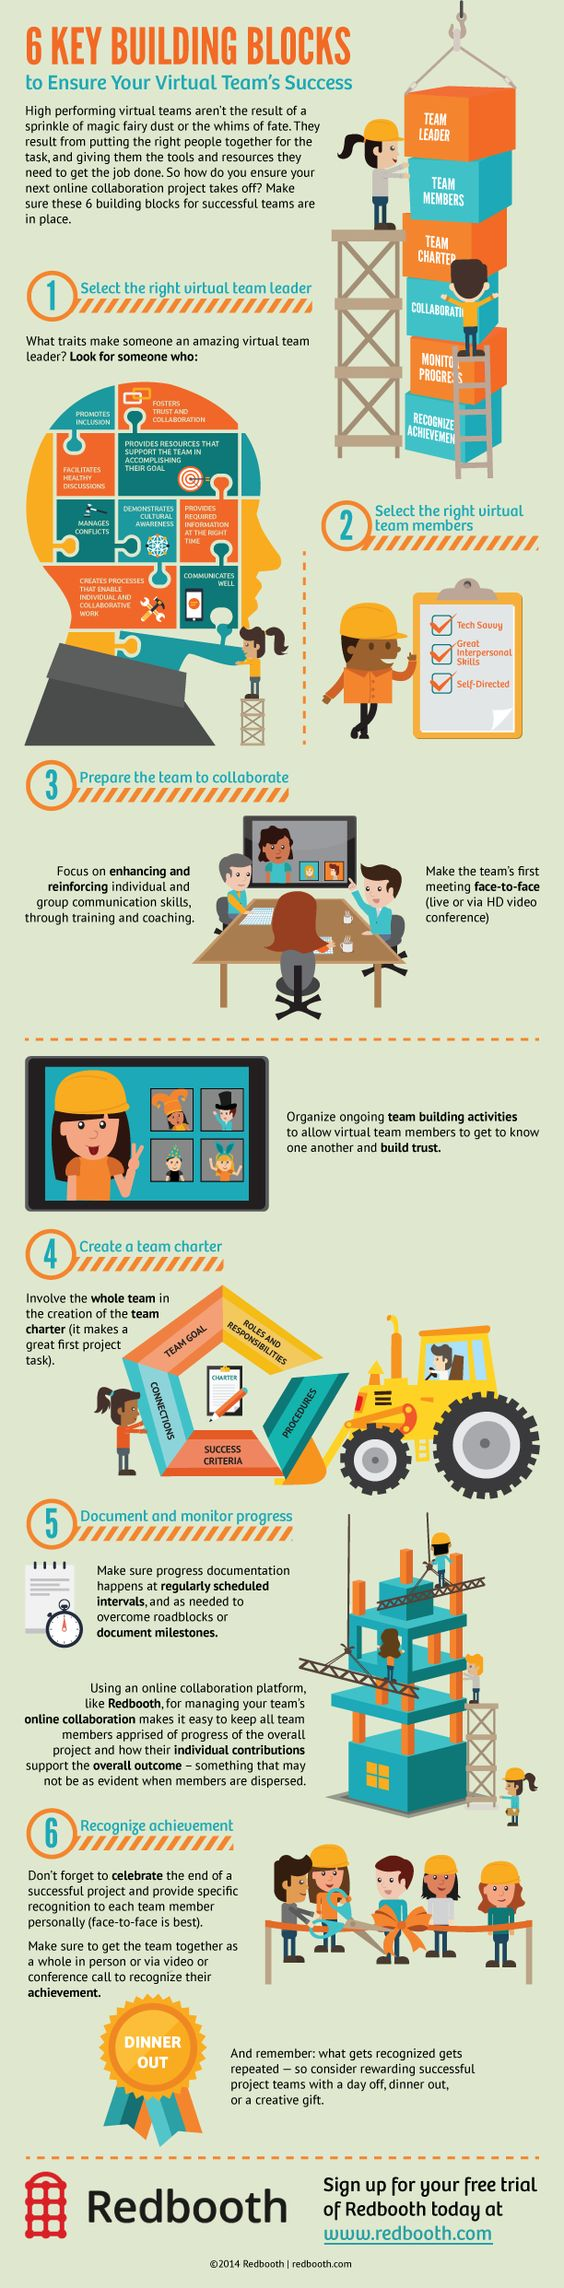 keys to your virtual teams success infographic tips for check out this infographic for our tips on how to ensure your next online collaboration project team takes off